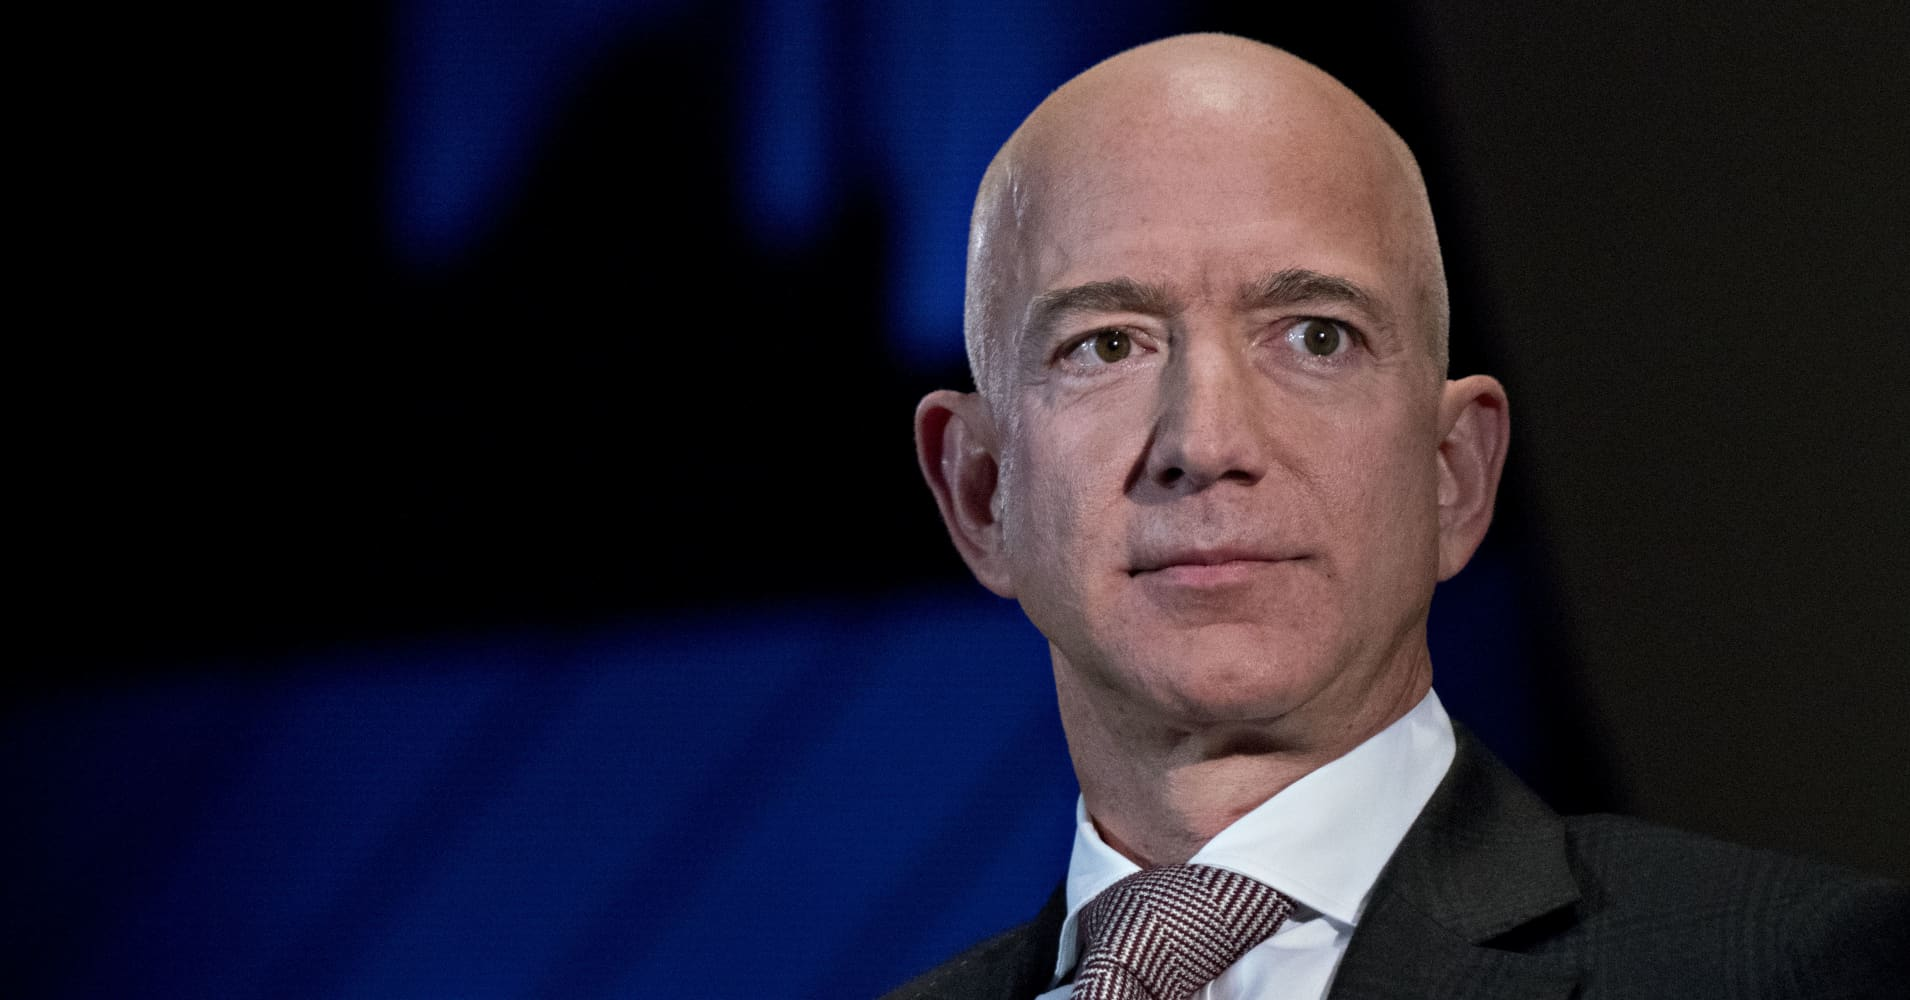 Shareholders are pressuring Amazon to stop selling facial recognition tech to the government